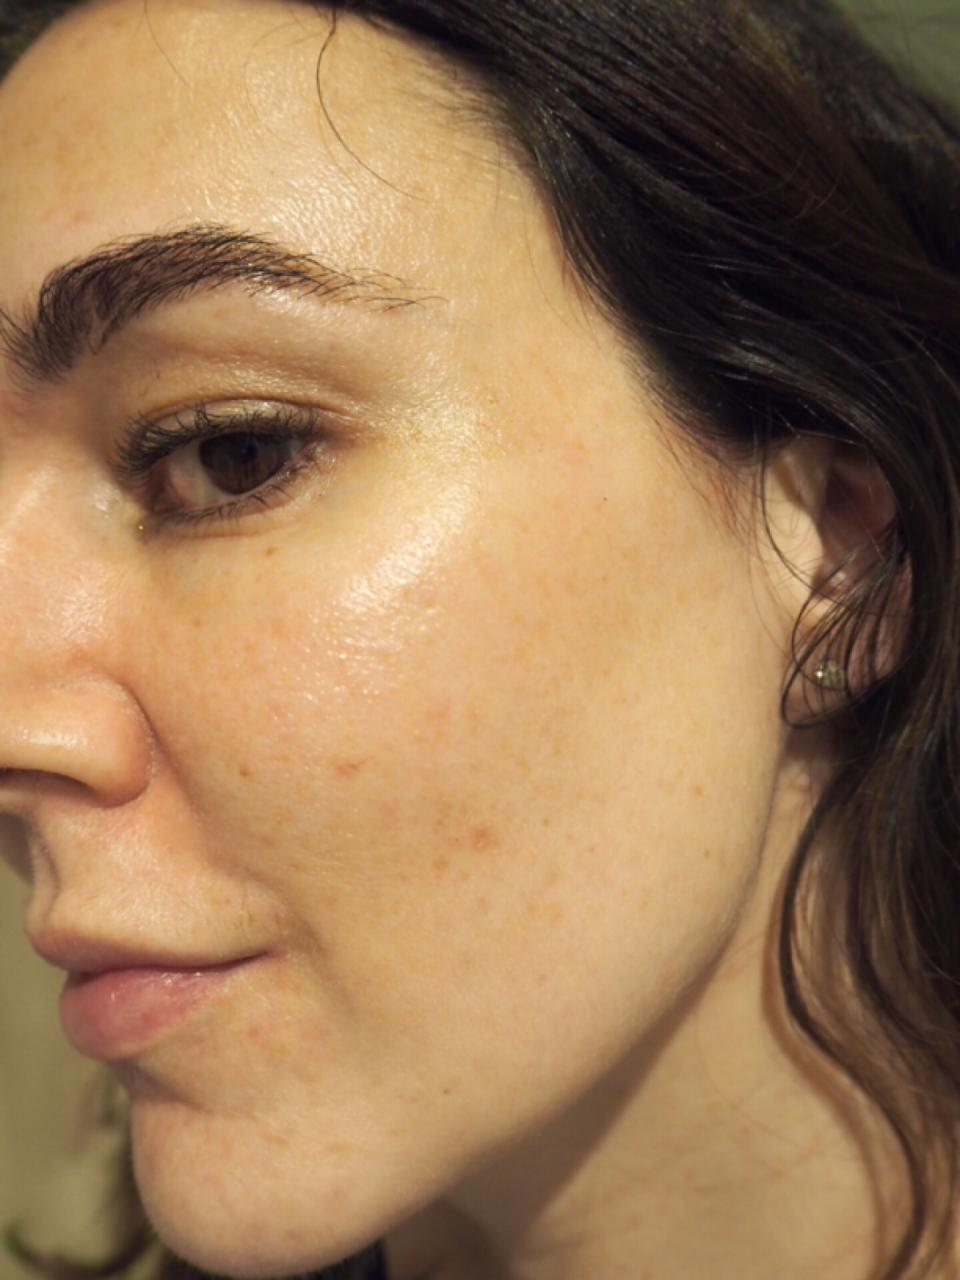 The Ordinary Results Before And After Pictures